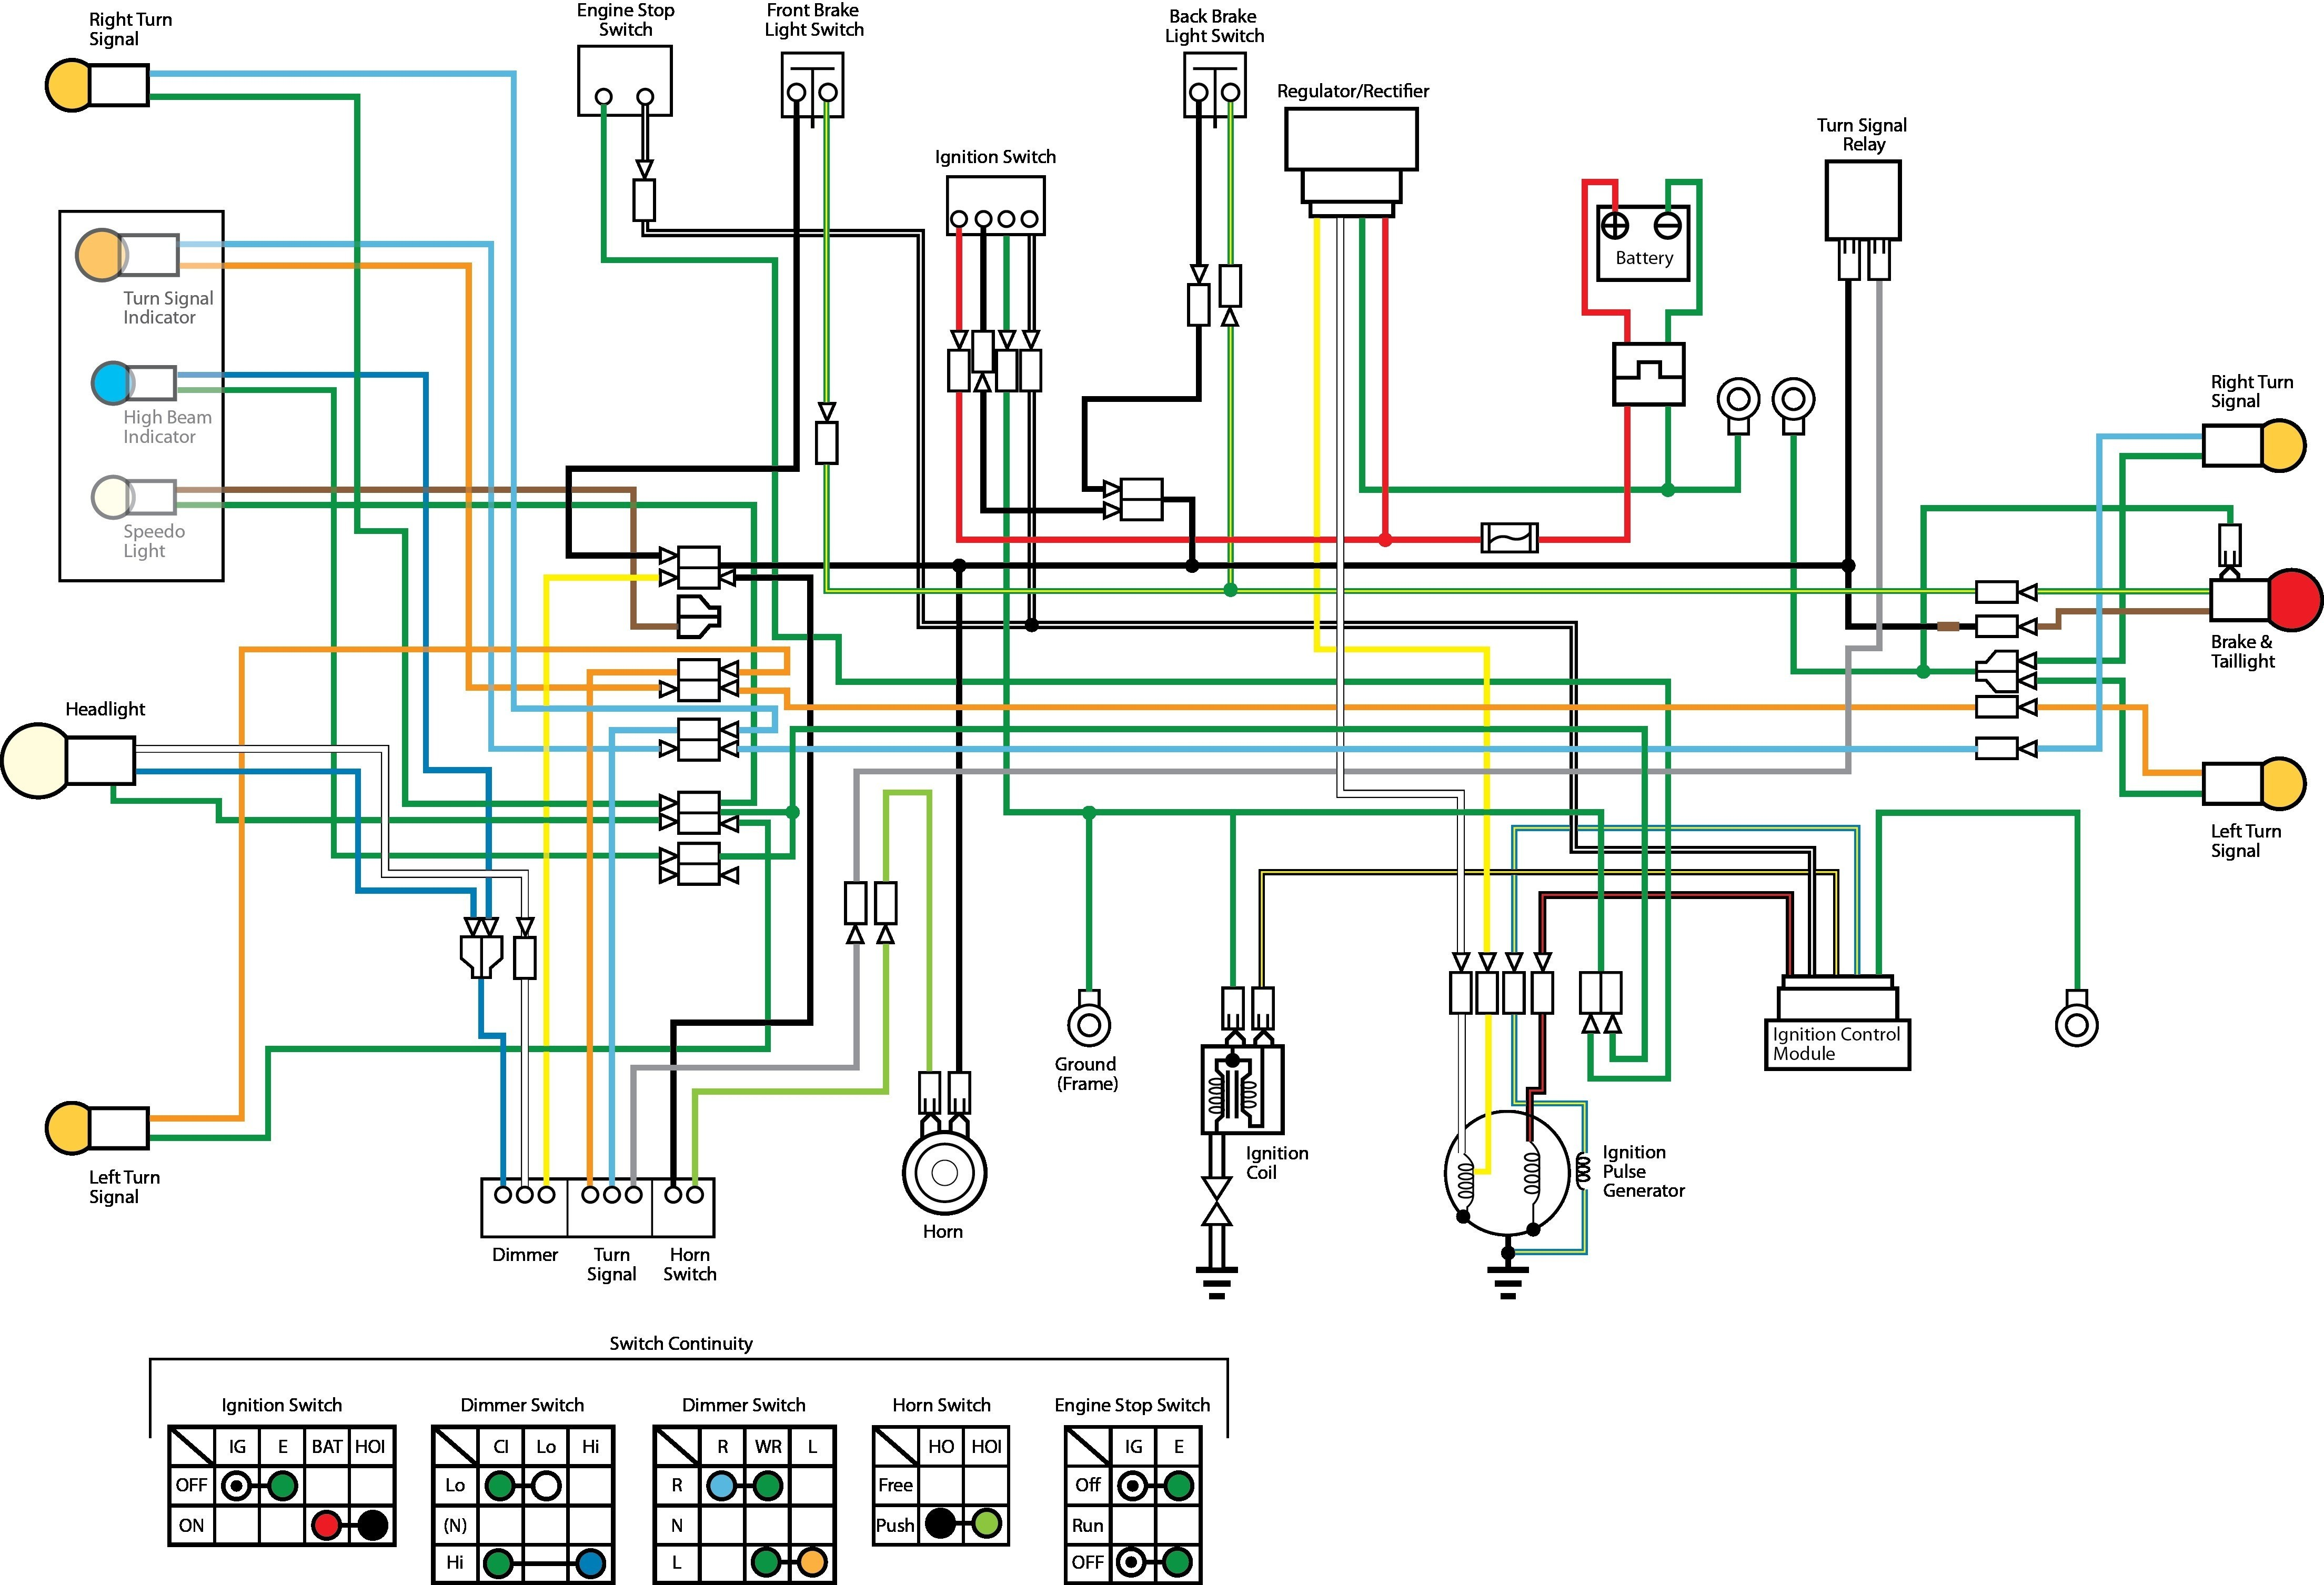 Diagram Of A Car Engine Wiring Diagram Brake Light Switch Refrence Universal Motorcycle Of Diagram Of A Car Engine